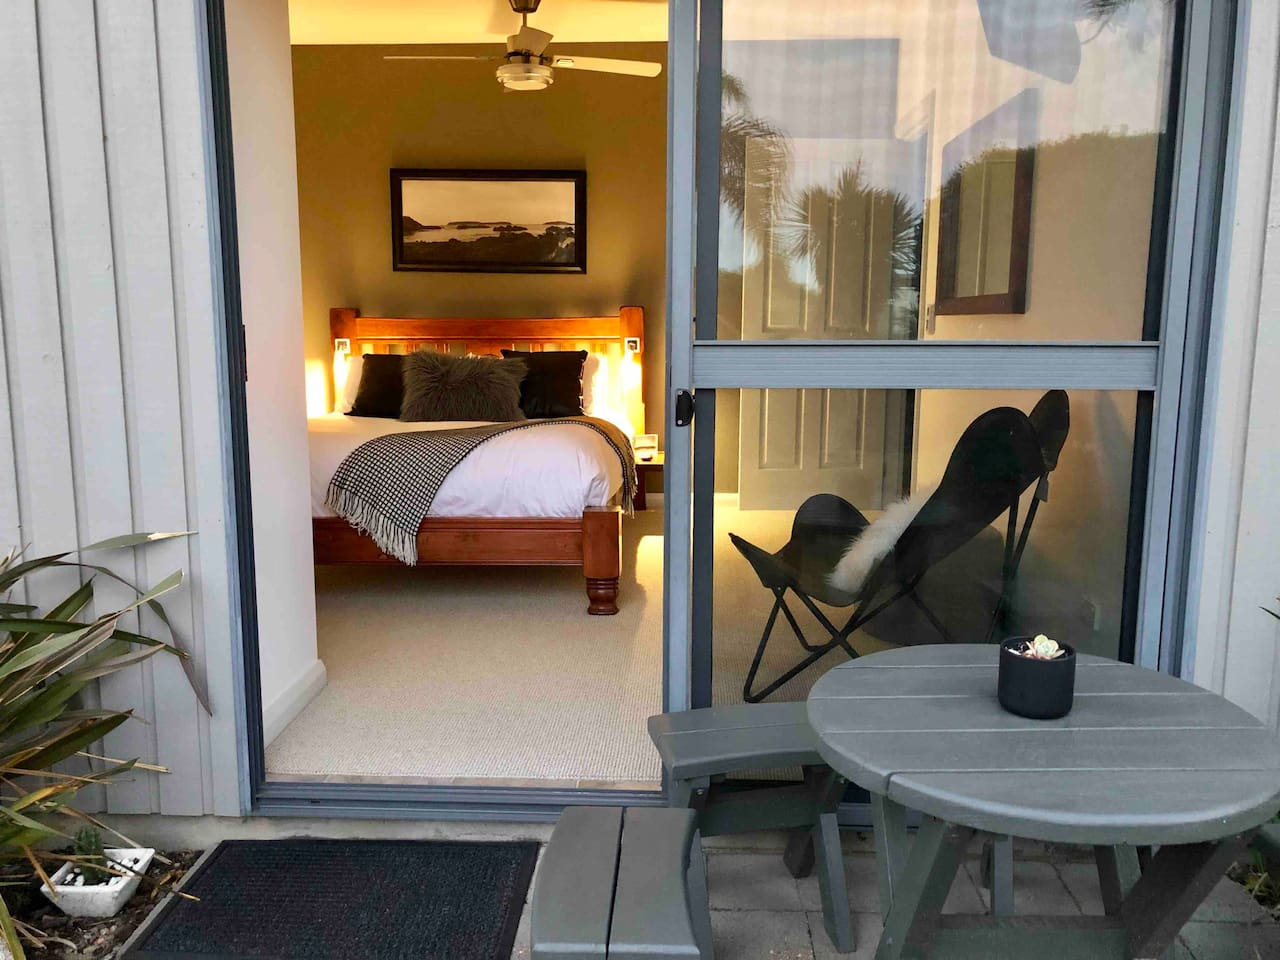 The room has a comfortable queen size bed, fan, heater, tv and chair to sit and relax. The room opens onto a garden with seating options to eat breakfast or sit and read.